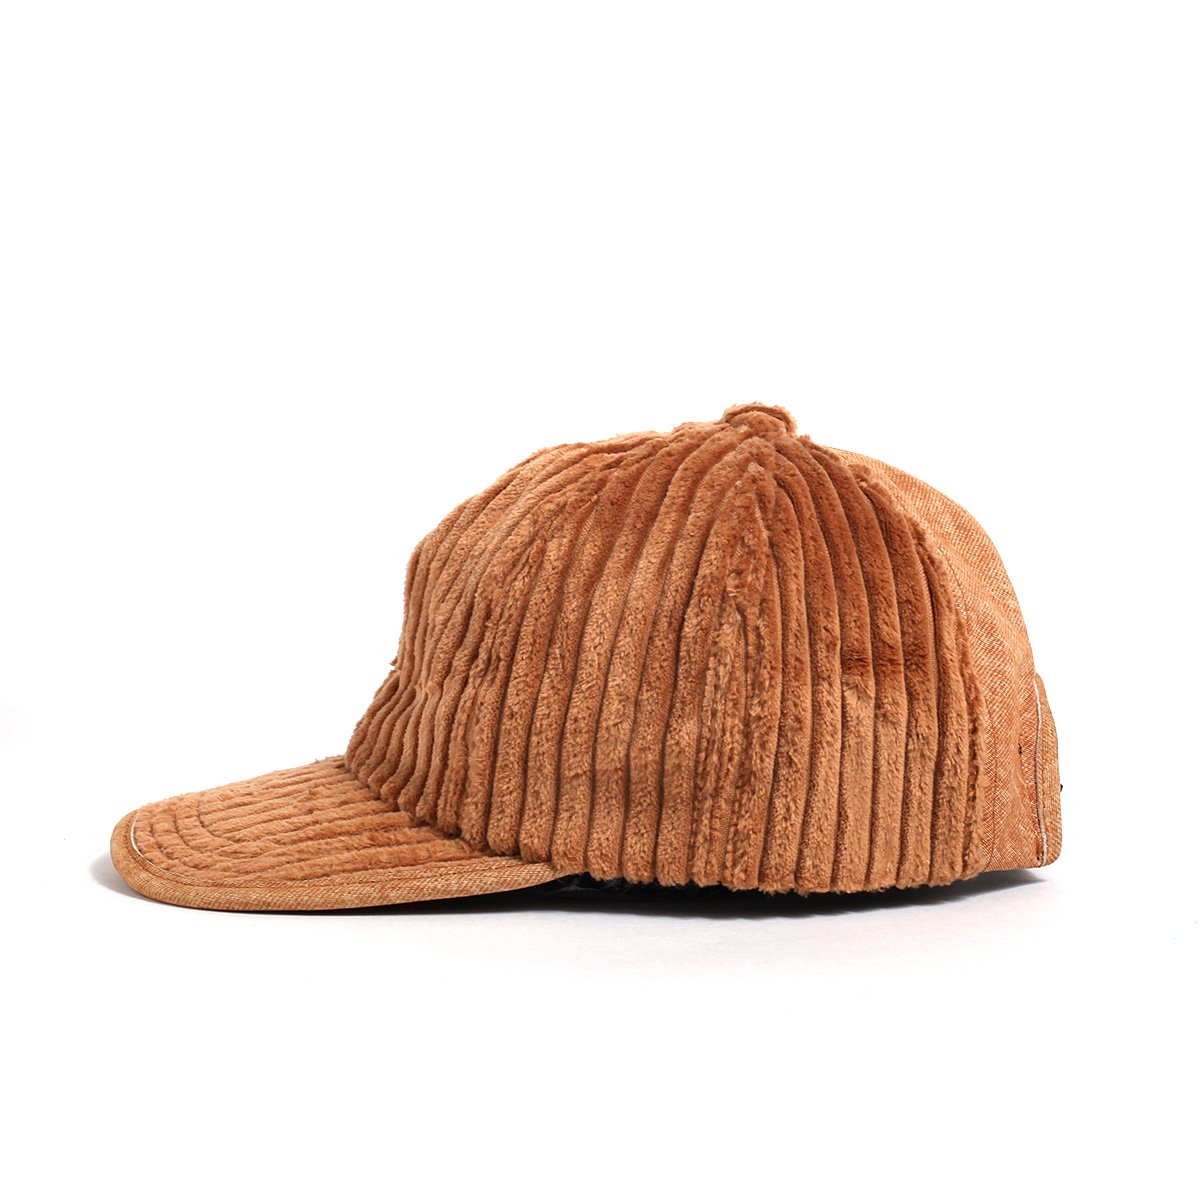 【SALE】LEATHER COMBI CORDUROY 8PANEL CAP 詳細画像2